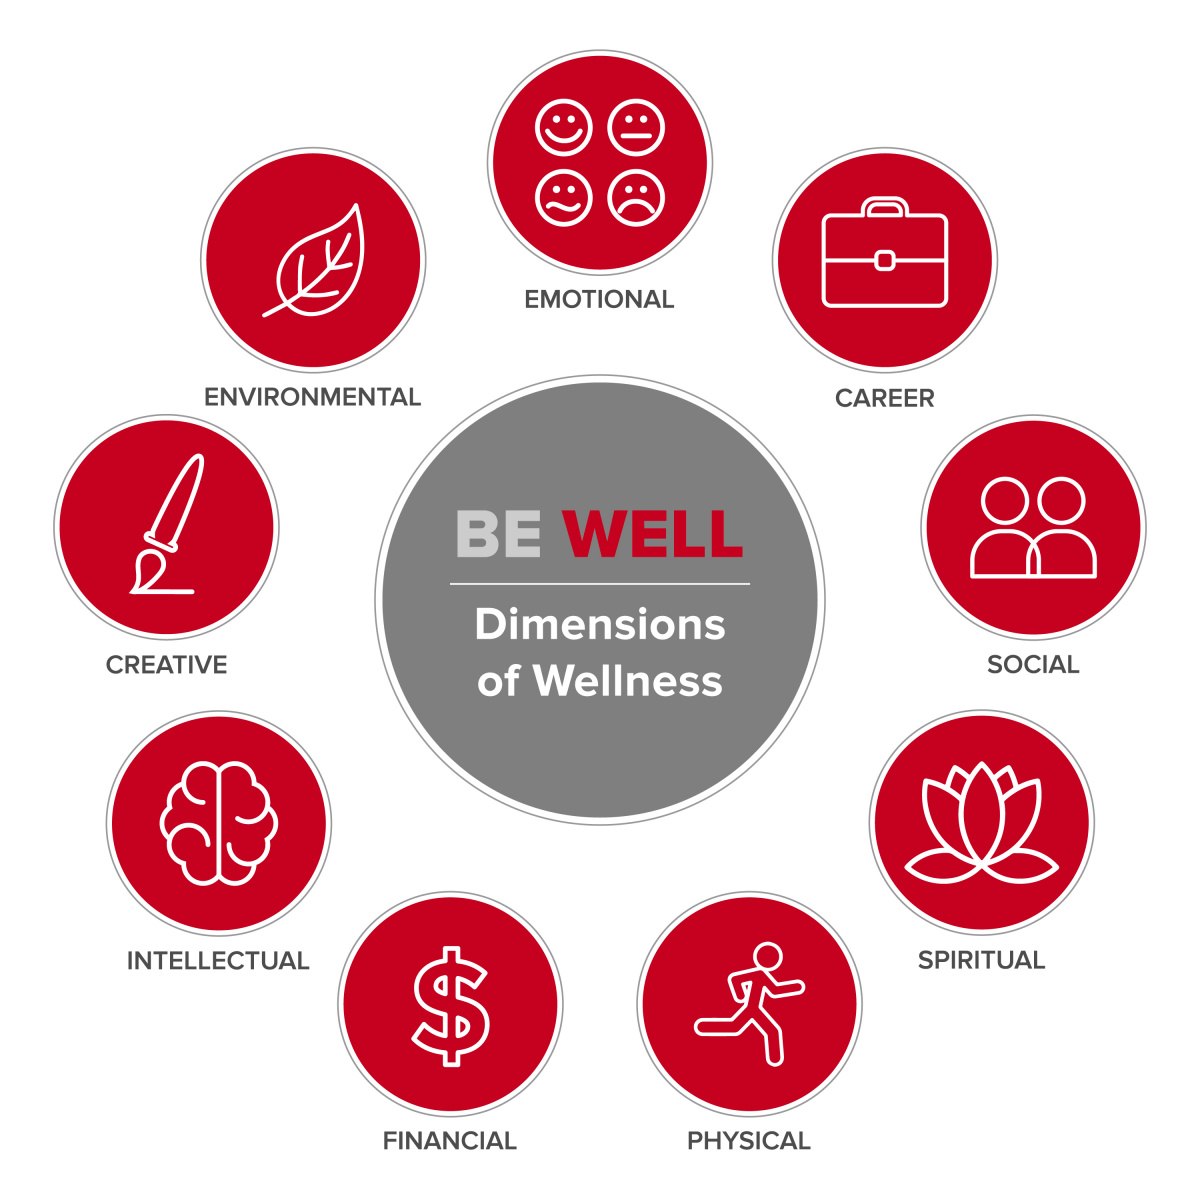 dimensions of wellbeing graphic, including icons for emotional, career, social, spiritual, physical, financial, intellectual, creative and environmental wellness